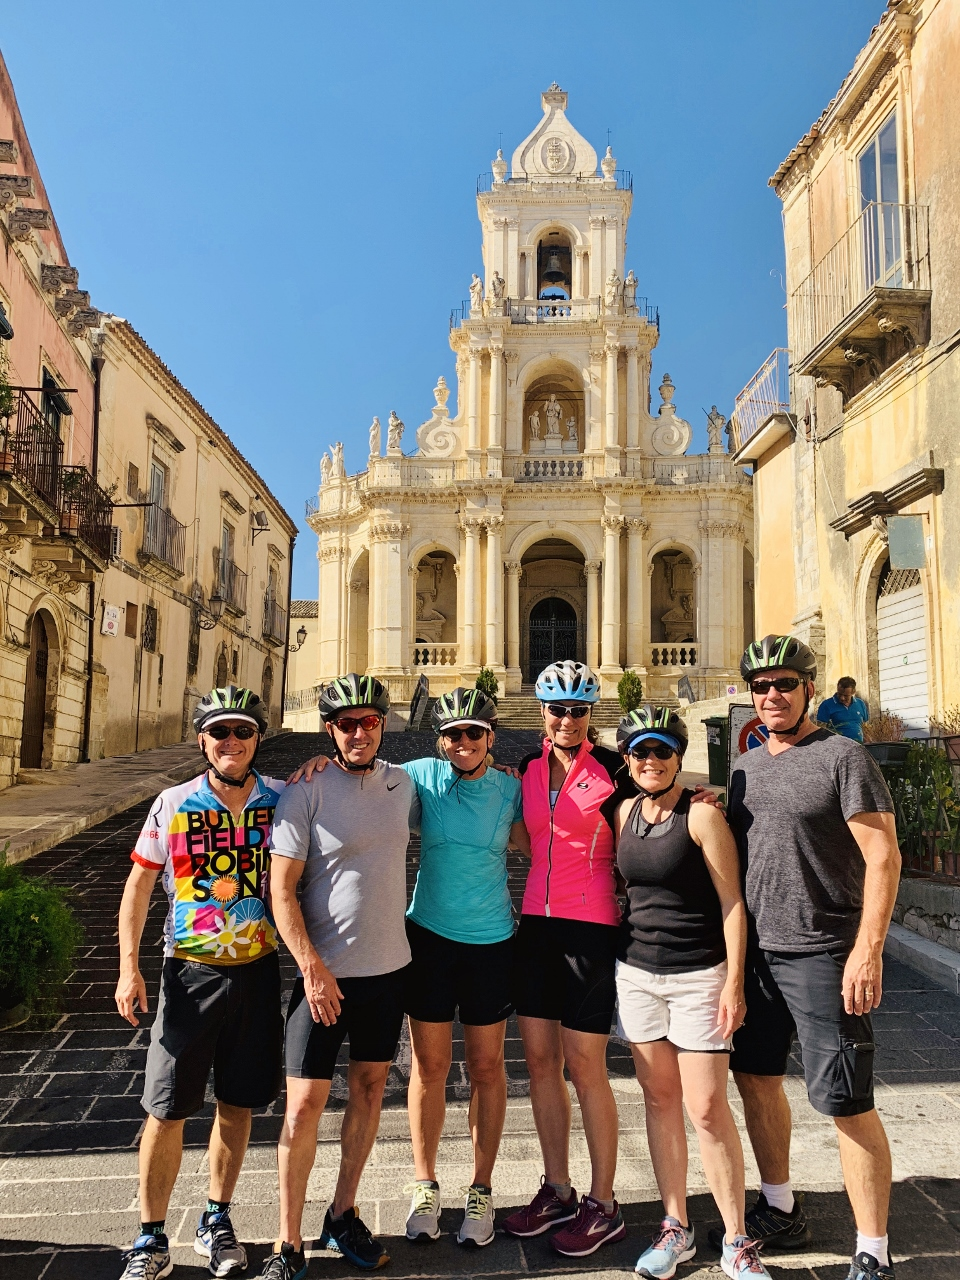 Travels to Sicily – Noto, Siracusa, Ragusa & Agrigento (Part 2 of 3) Image 7